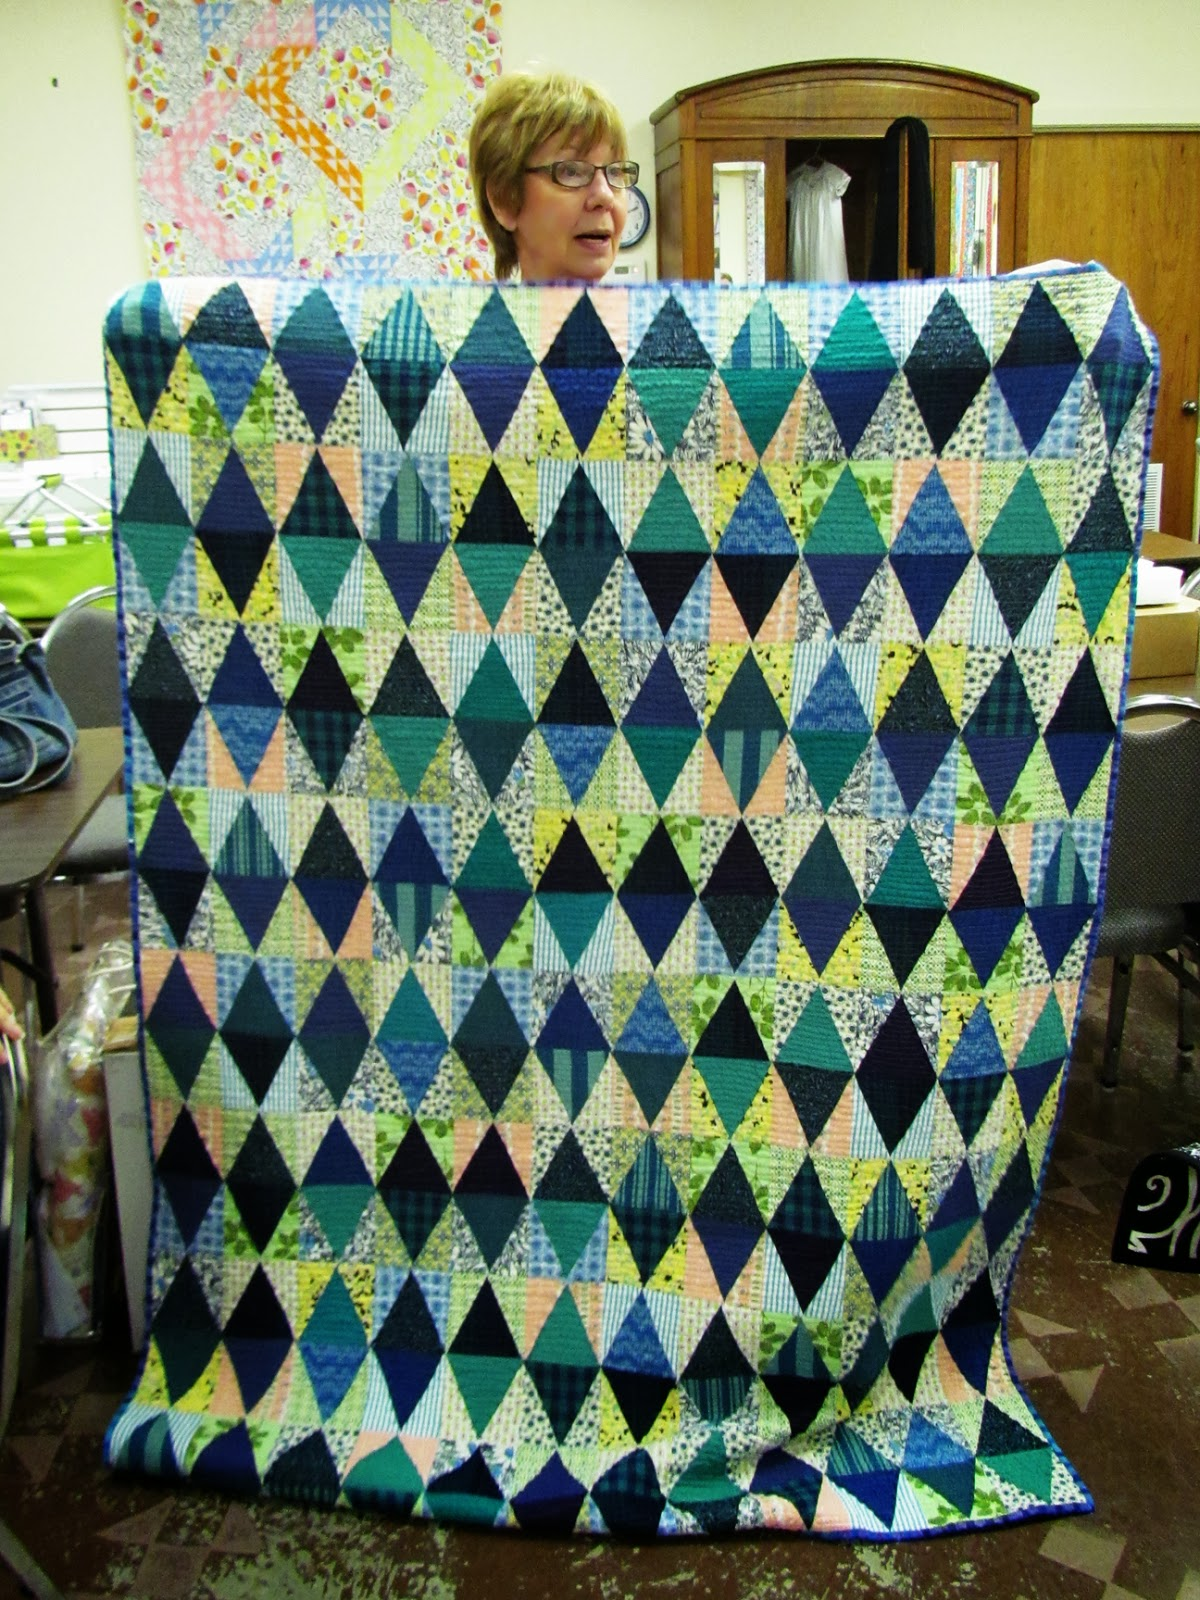 vintage feed sacks in equalateral triangle quilt by Marty Mason